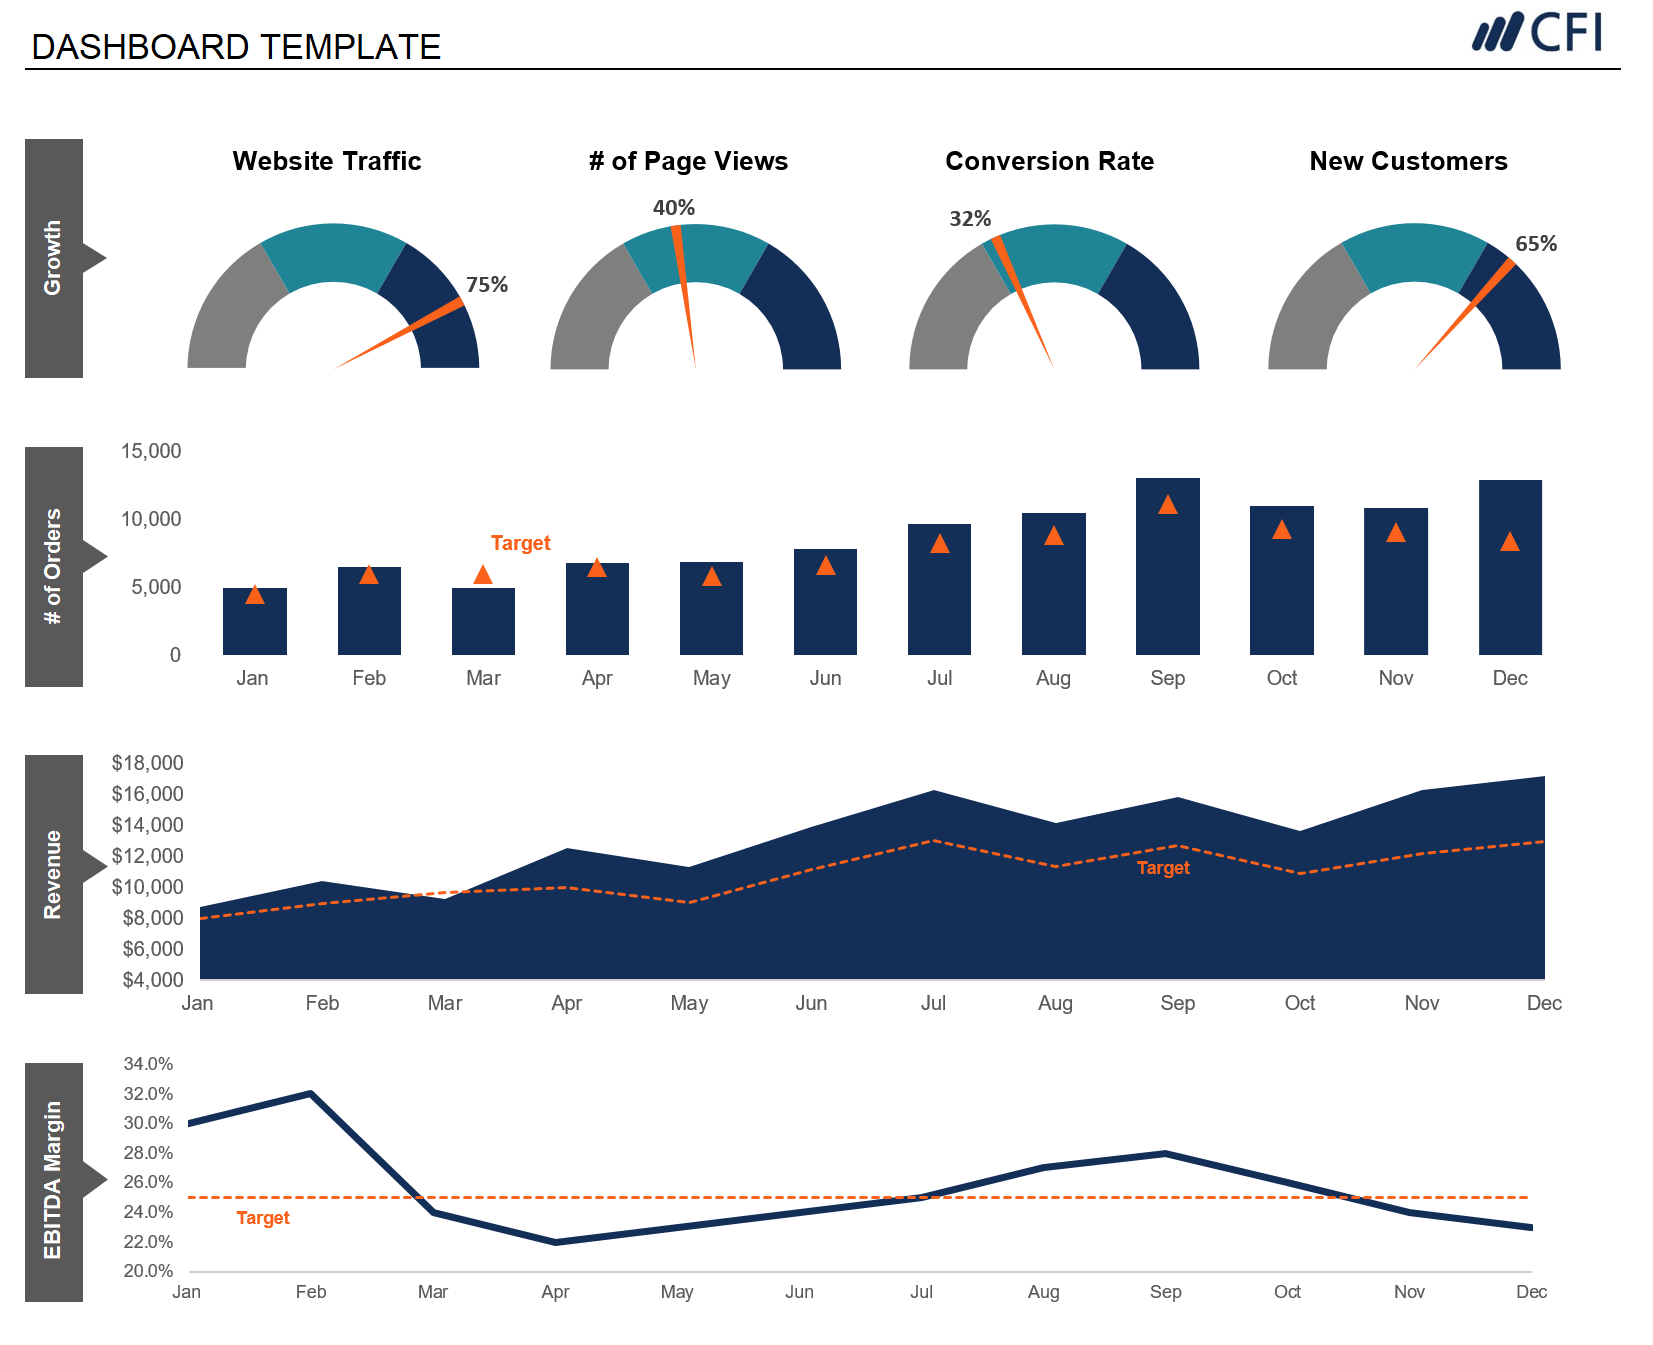 Financial Dashboard Screenshot